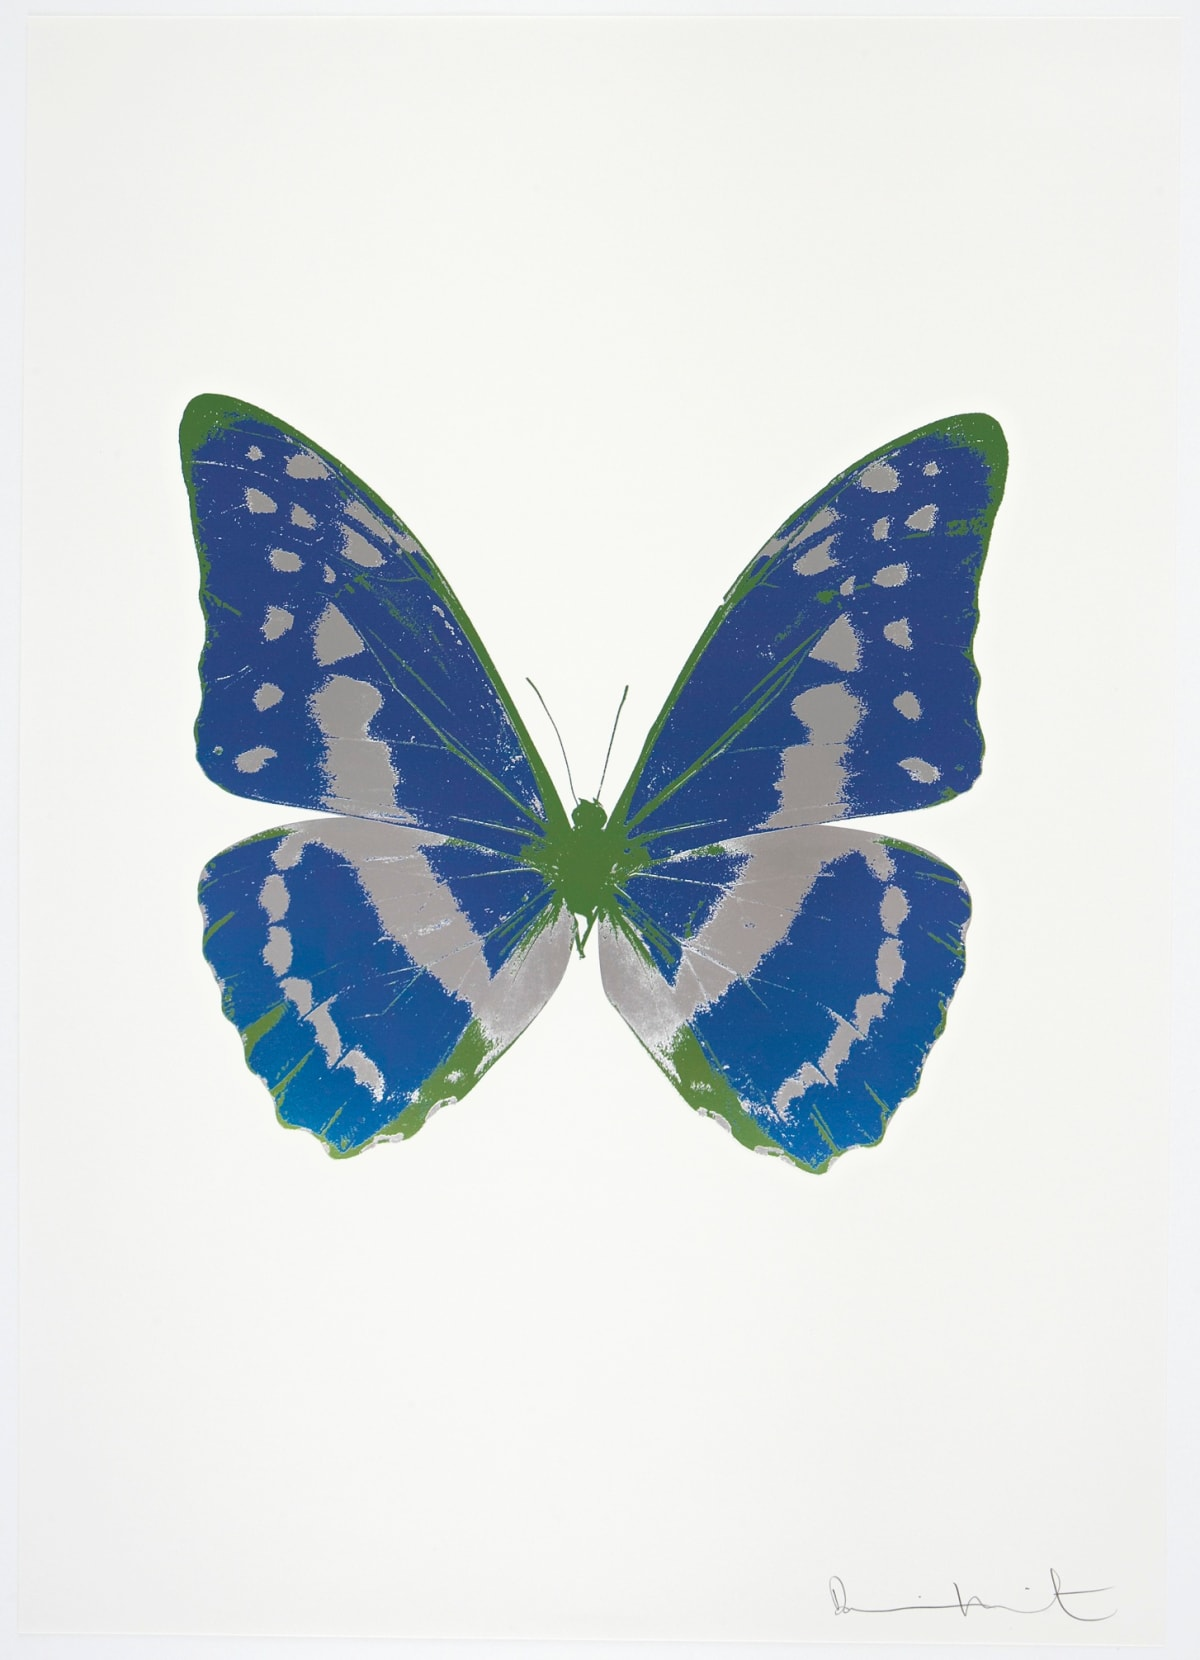 Damien Hirst The Souls III - Frost Blue/Silver Gloss/Leaf Green, 2010 3 colour foil block on 300gsm Arches 88 archival paper. Signed and numbered. Published by Paul Stolper and Other Criteria 72 x 51cm OC7925 / 660-28 Edition of 15